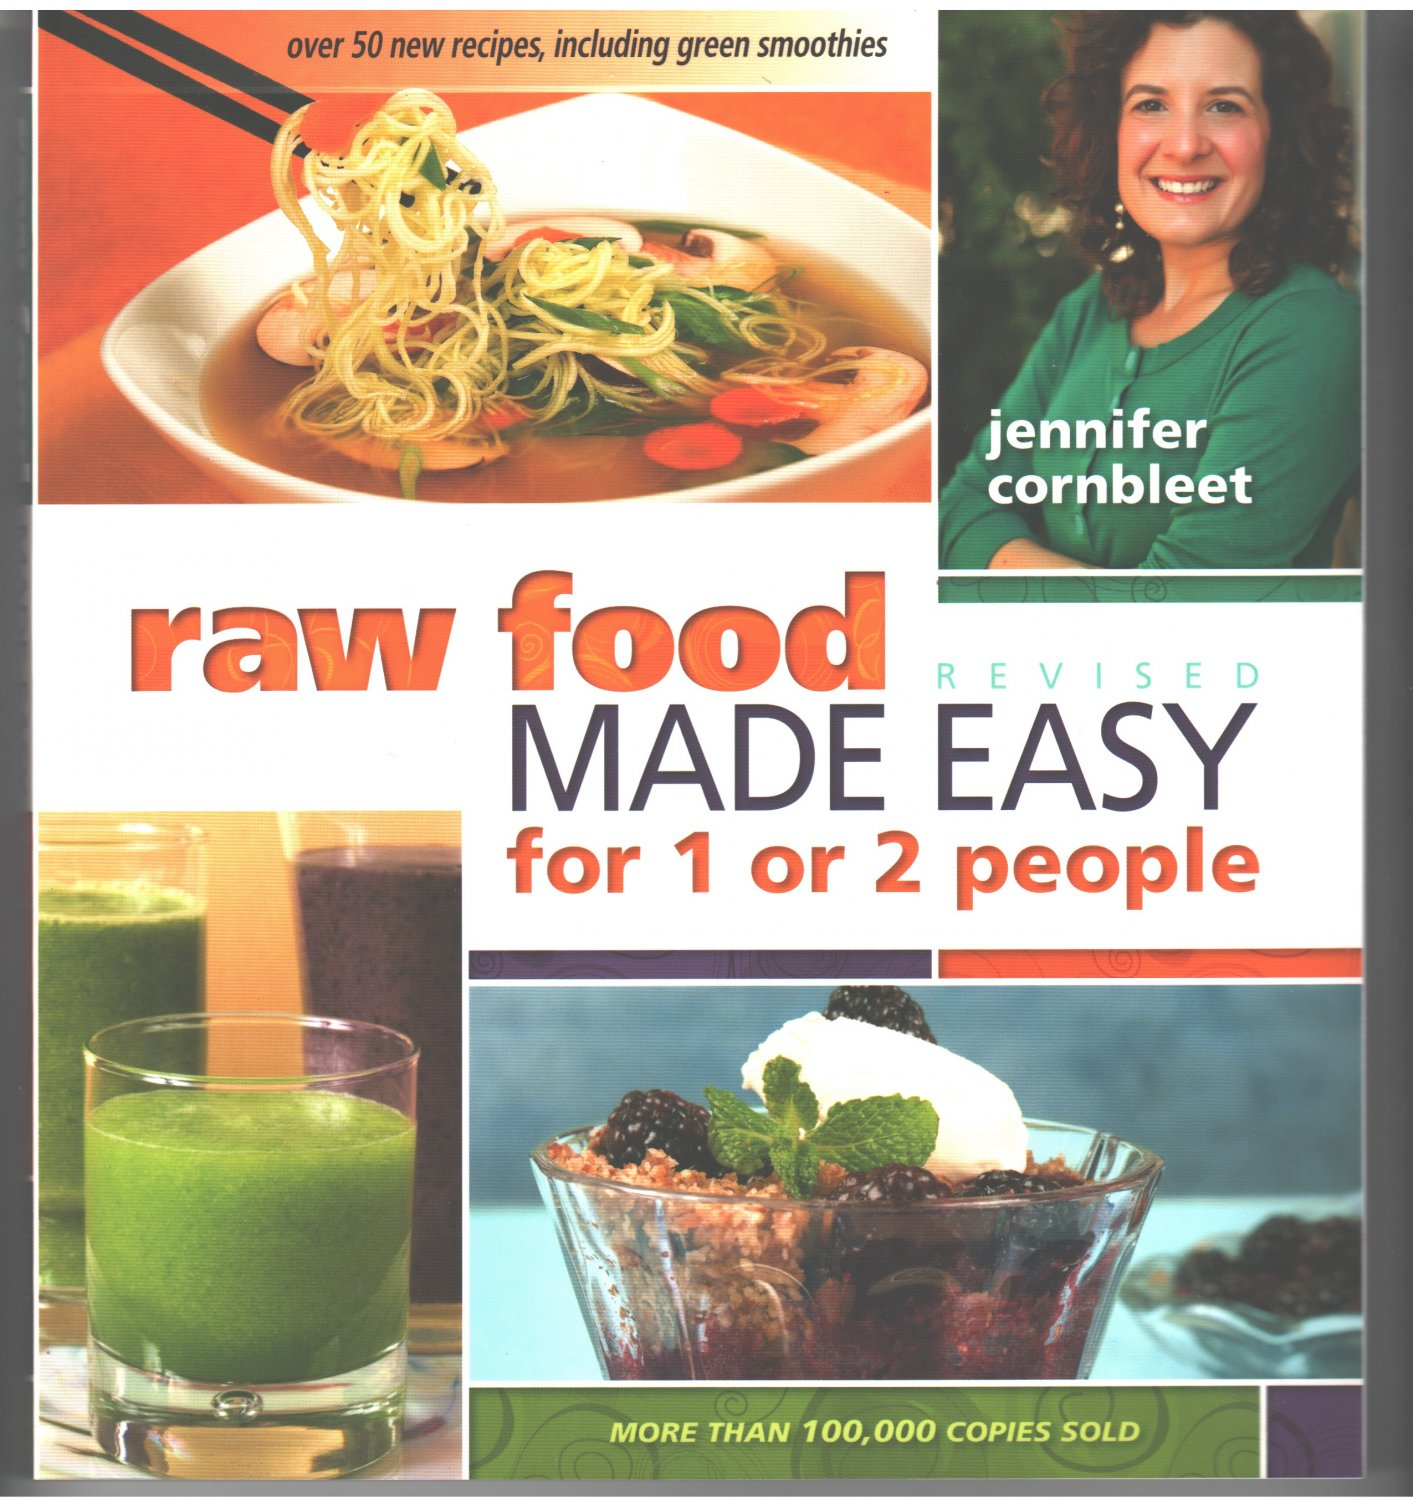 Raw Food Made Easy for 1 or 2 People, Revised Edition by Jennifer Cornbleet